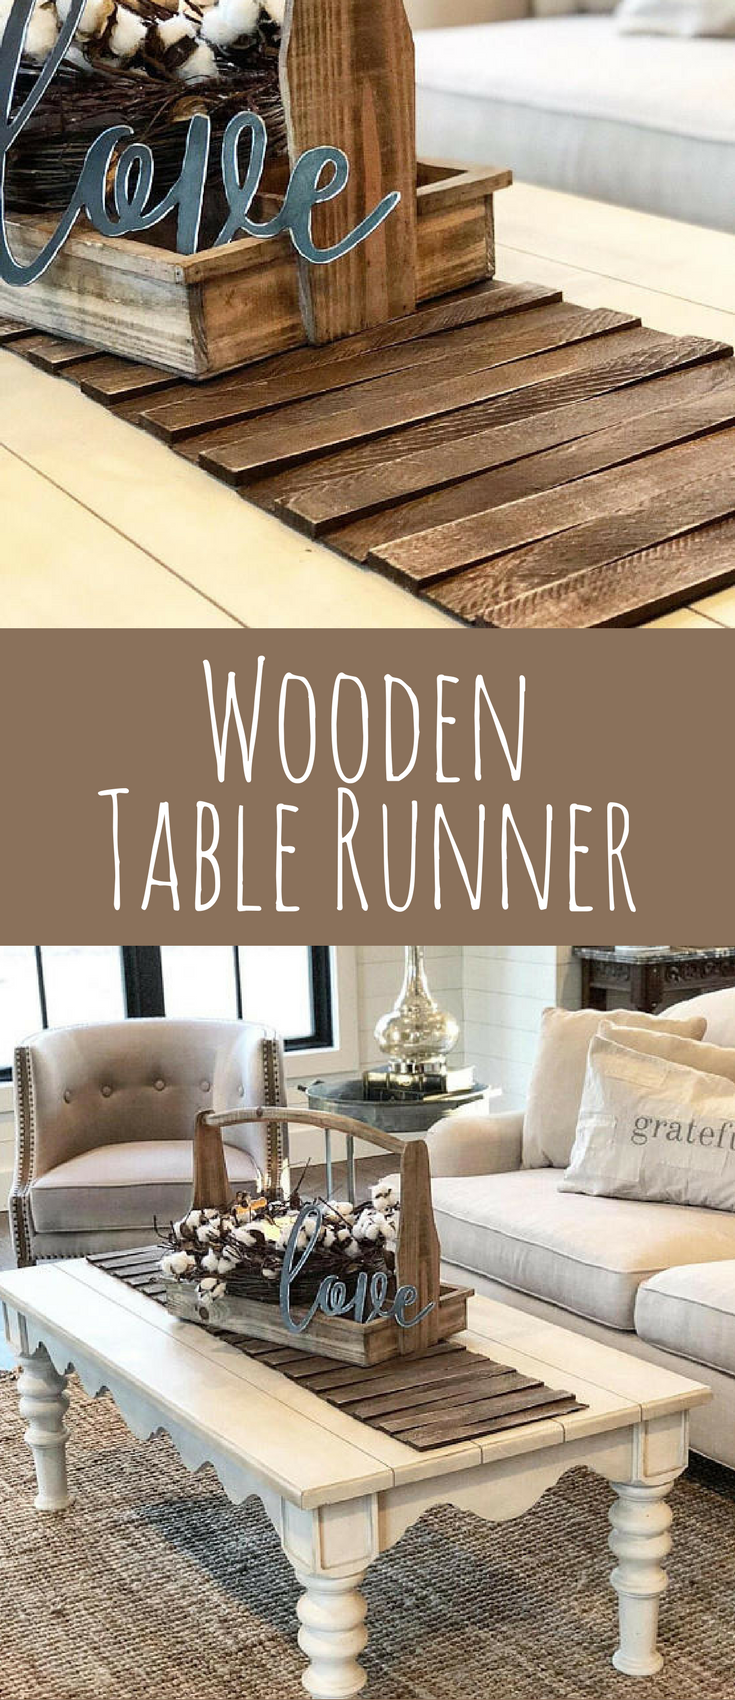 Wooden Table Runner - Rustic Home Decor - Tabletop Centerpiece